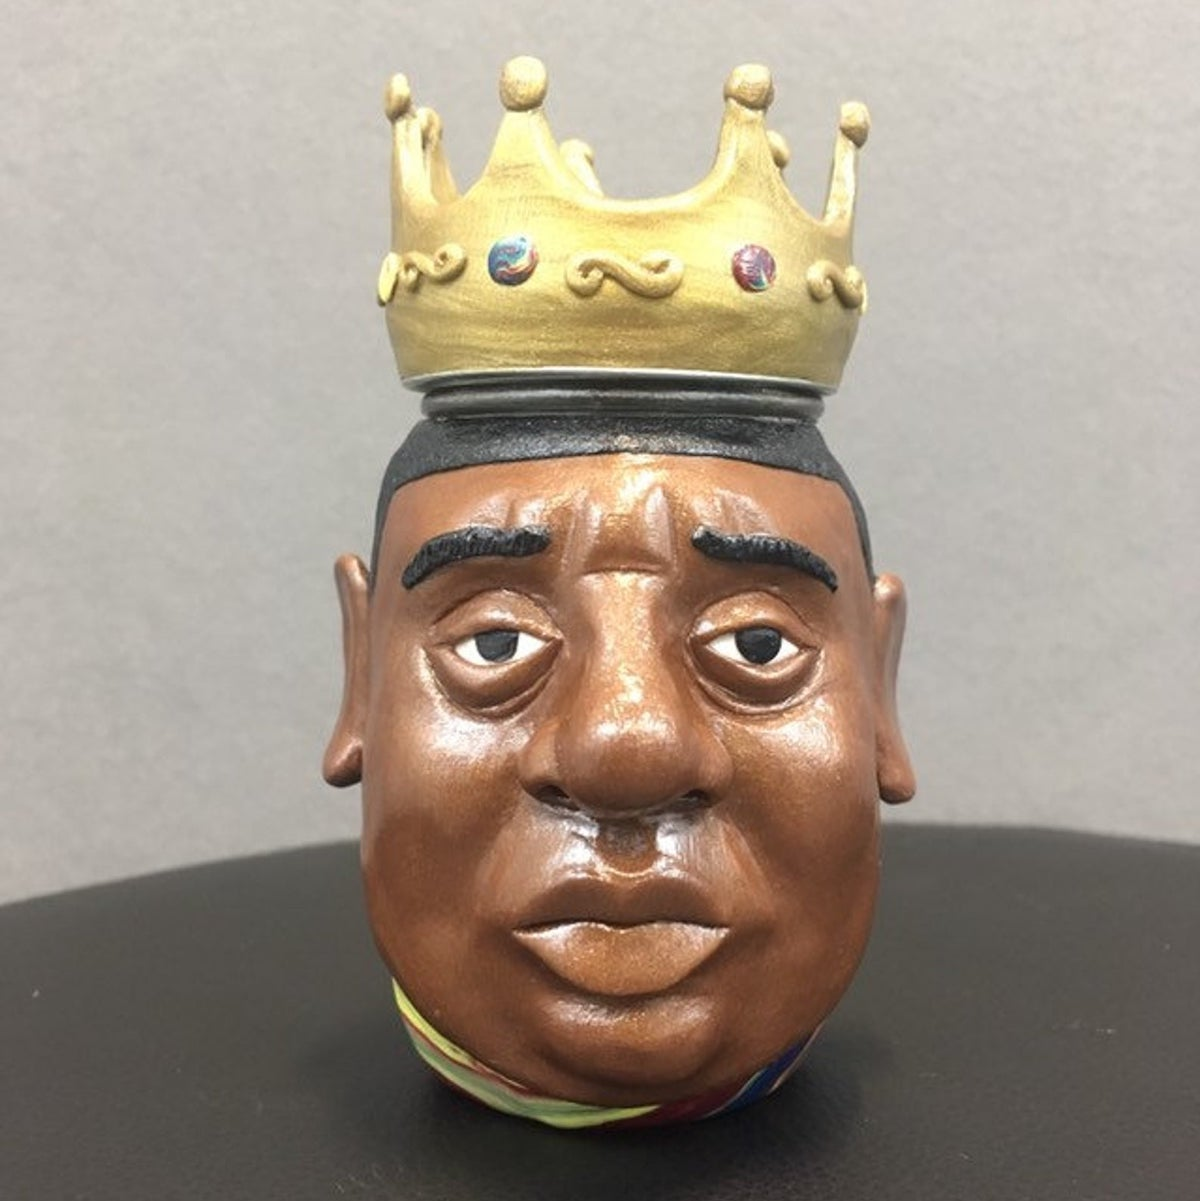 Etsy Gift Guide - Notorious B.I.G. Clay Sculpture Jar